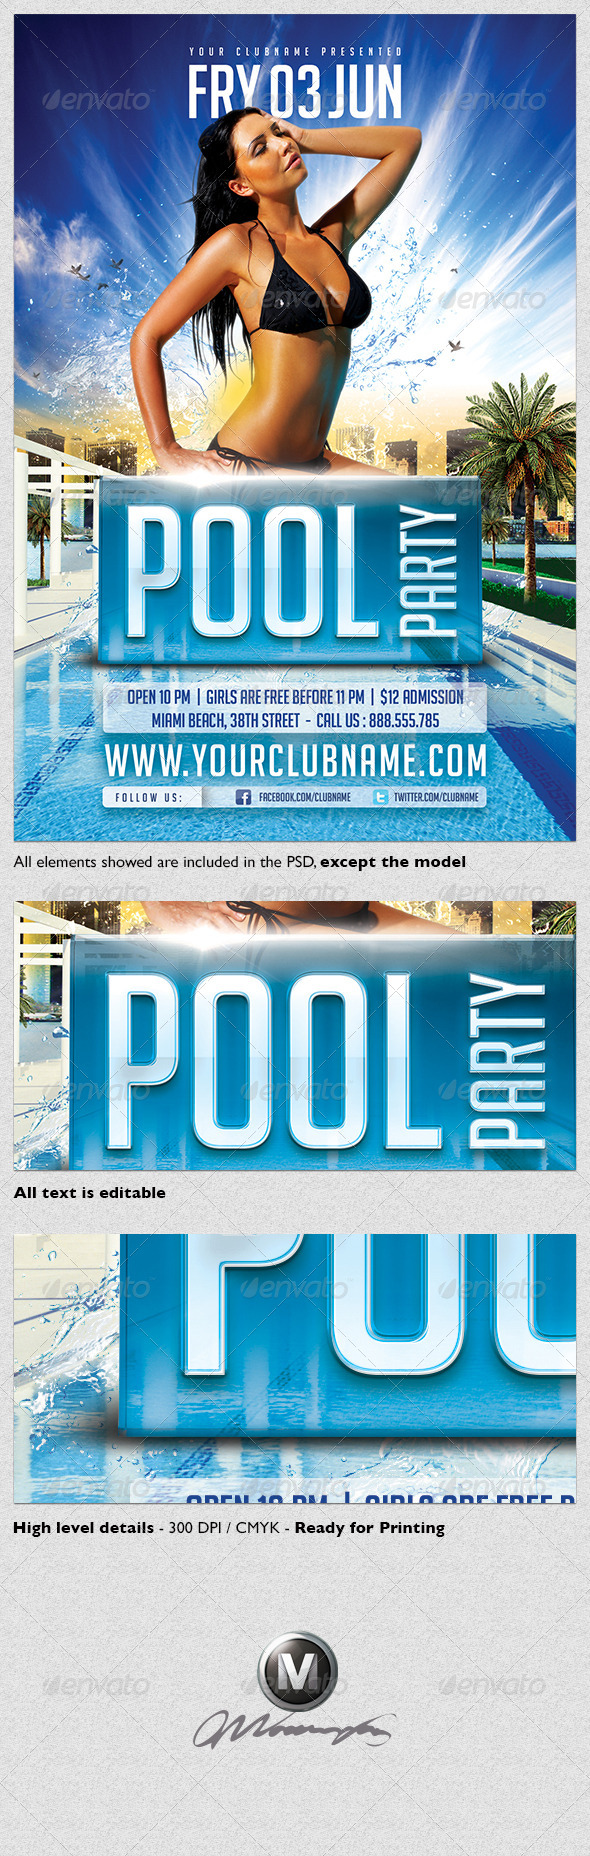 Pool Party Flyer Template GraphicRiver Item for Sale – Pool Party Flyer Template